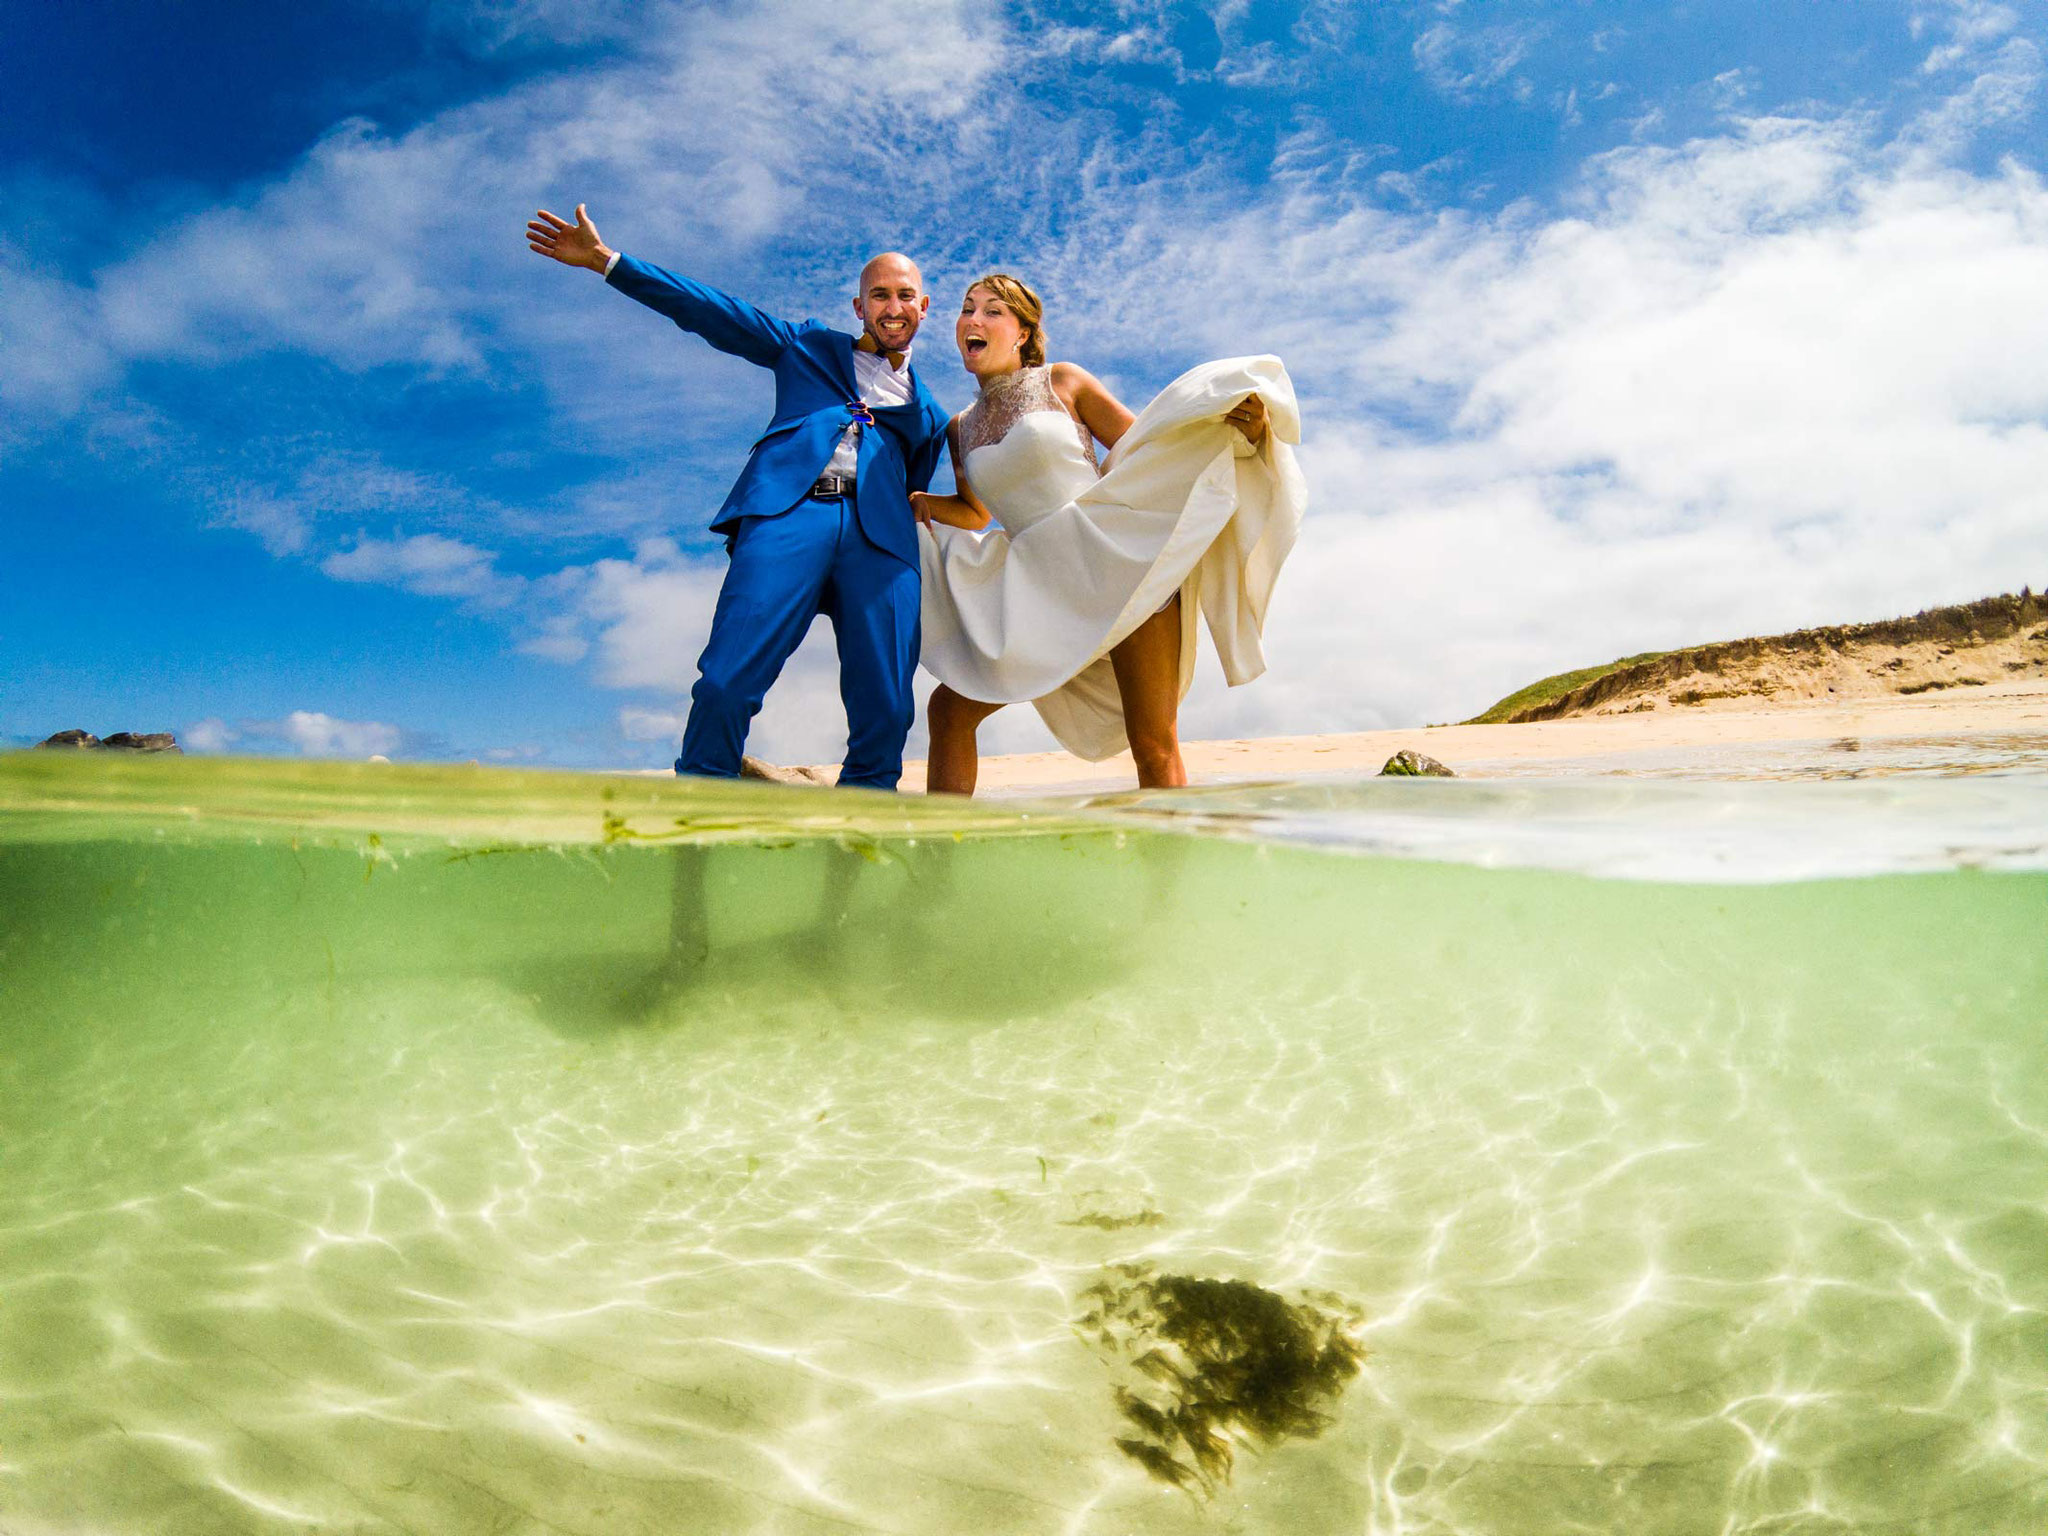 Des photographies de mariages qui sortent de l'ordinaire, Photographe de mariages à l'île de Houat wedding photo, underwaterweddingphotography dome turquoise